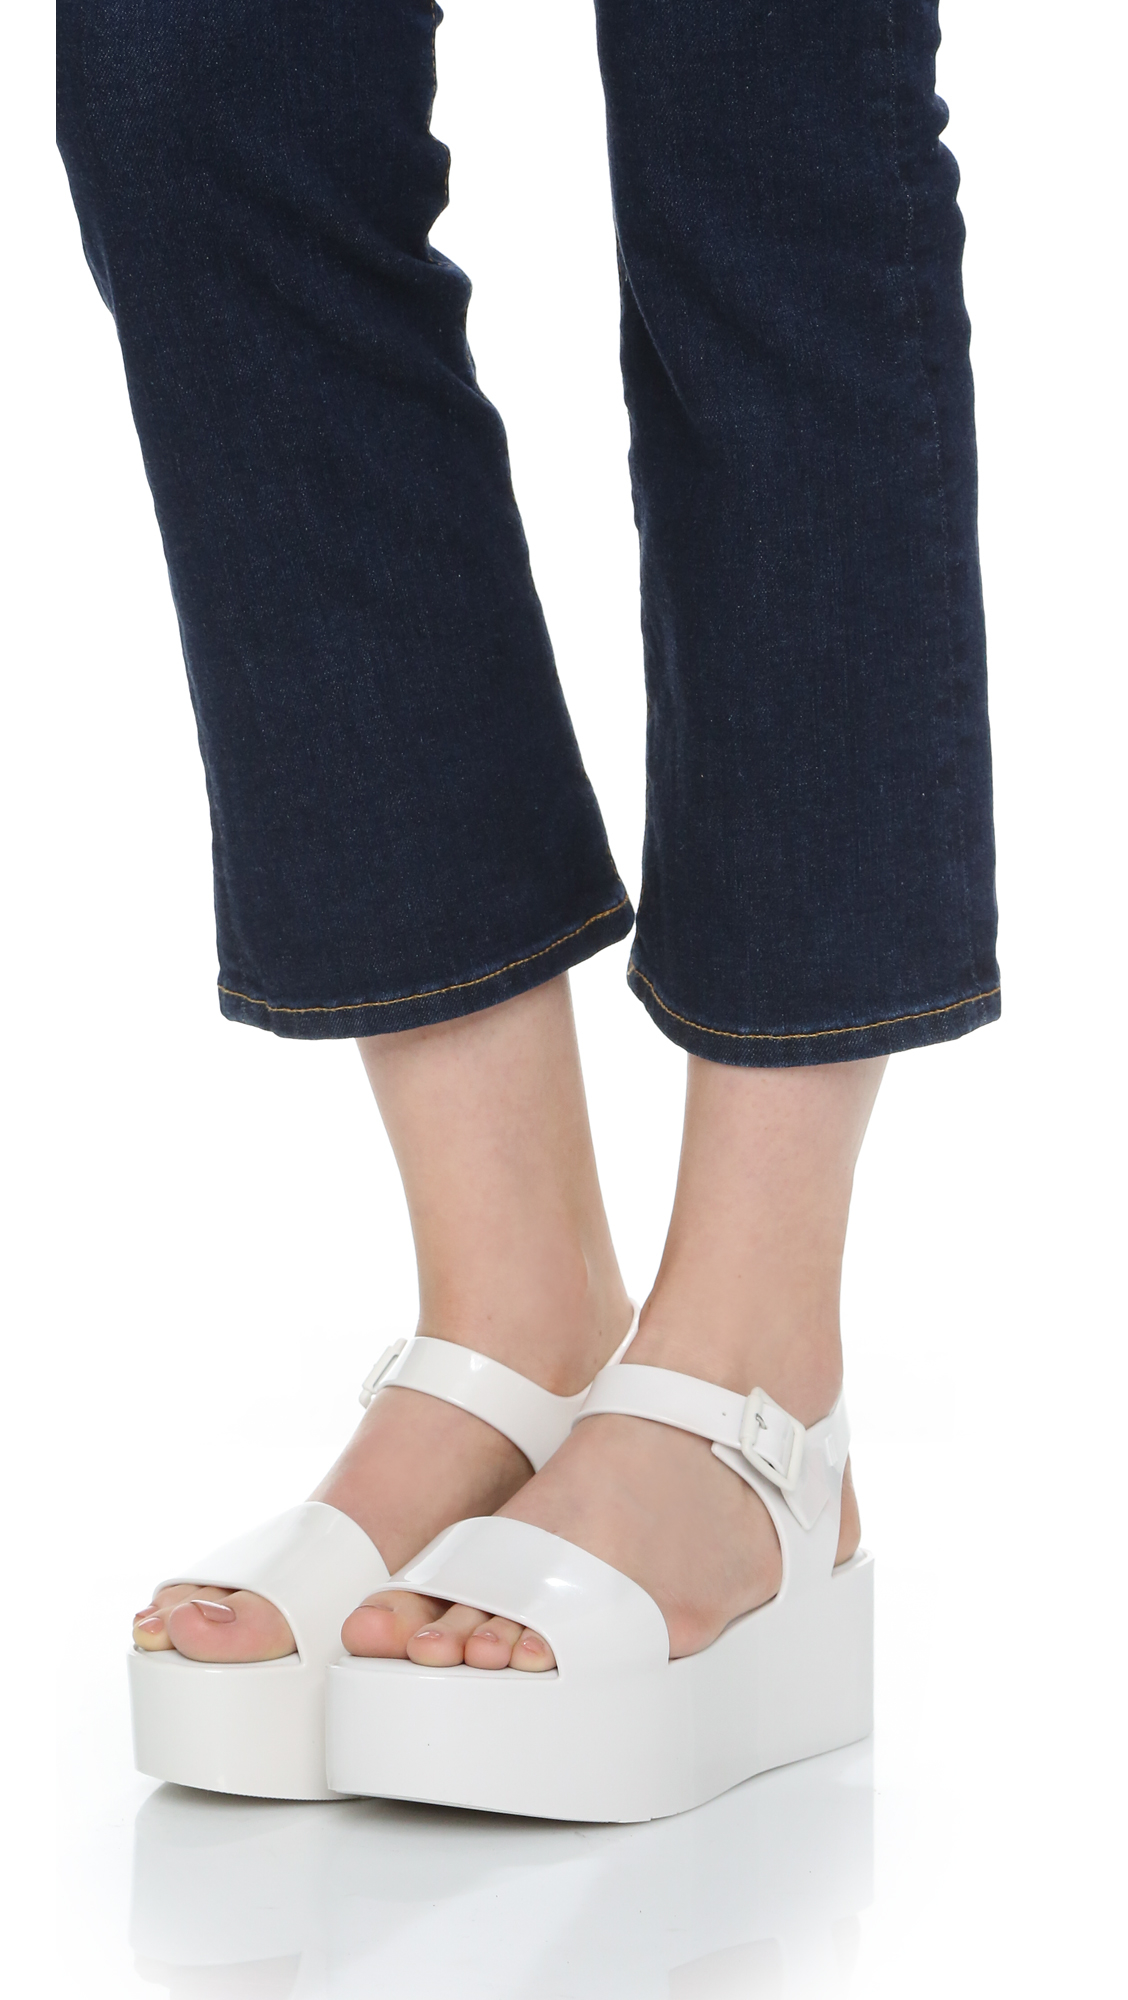 bd699f35c91d Gallery. Previously sold at  Shopbop · Women s White Platform Wedges  Women s Flatforms ...